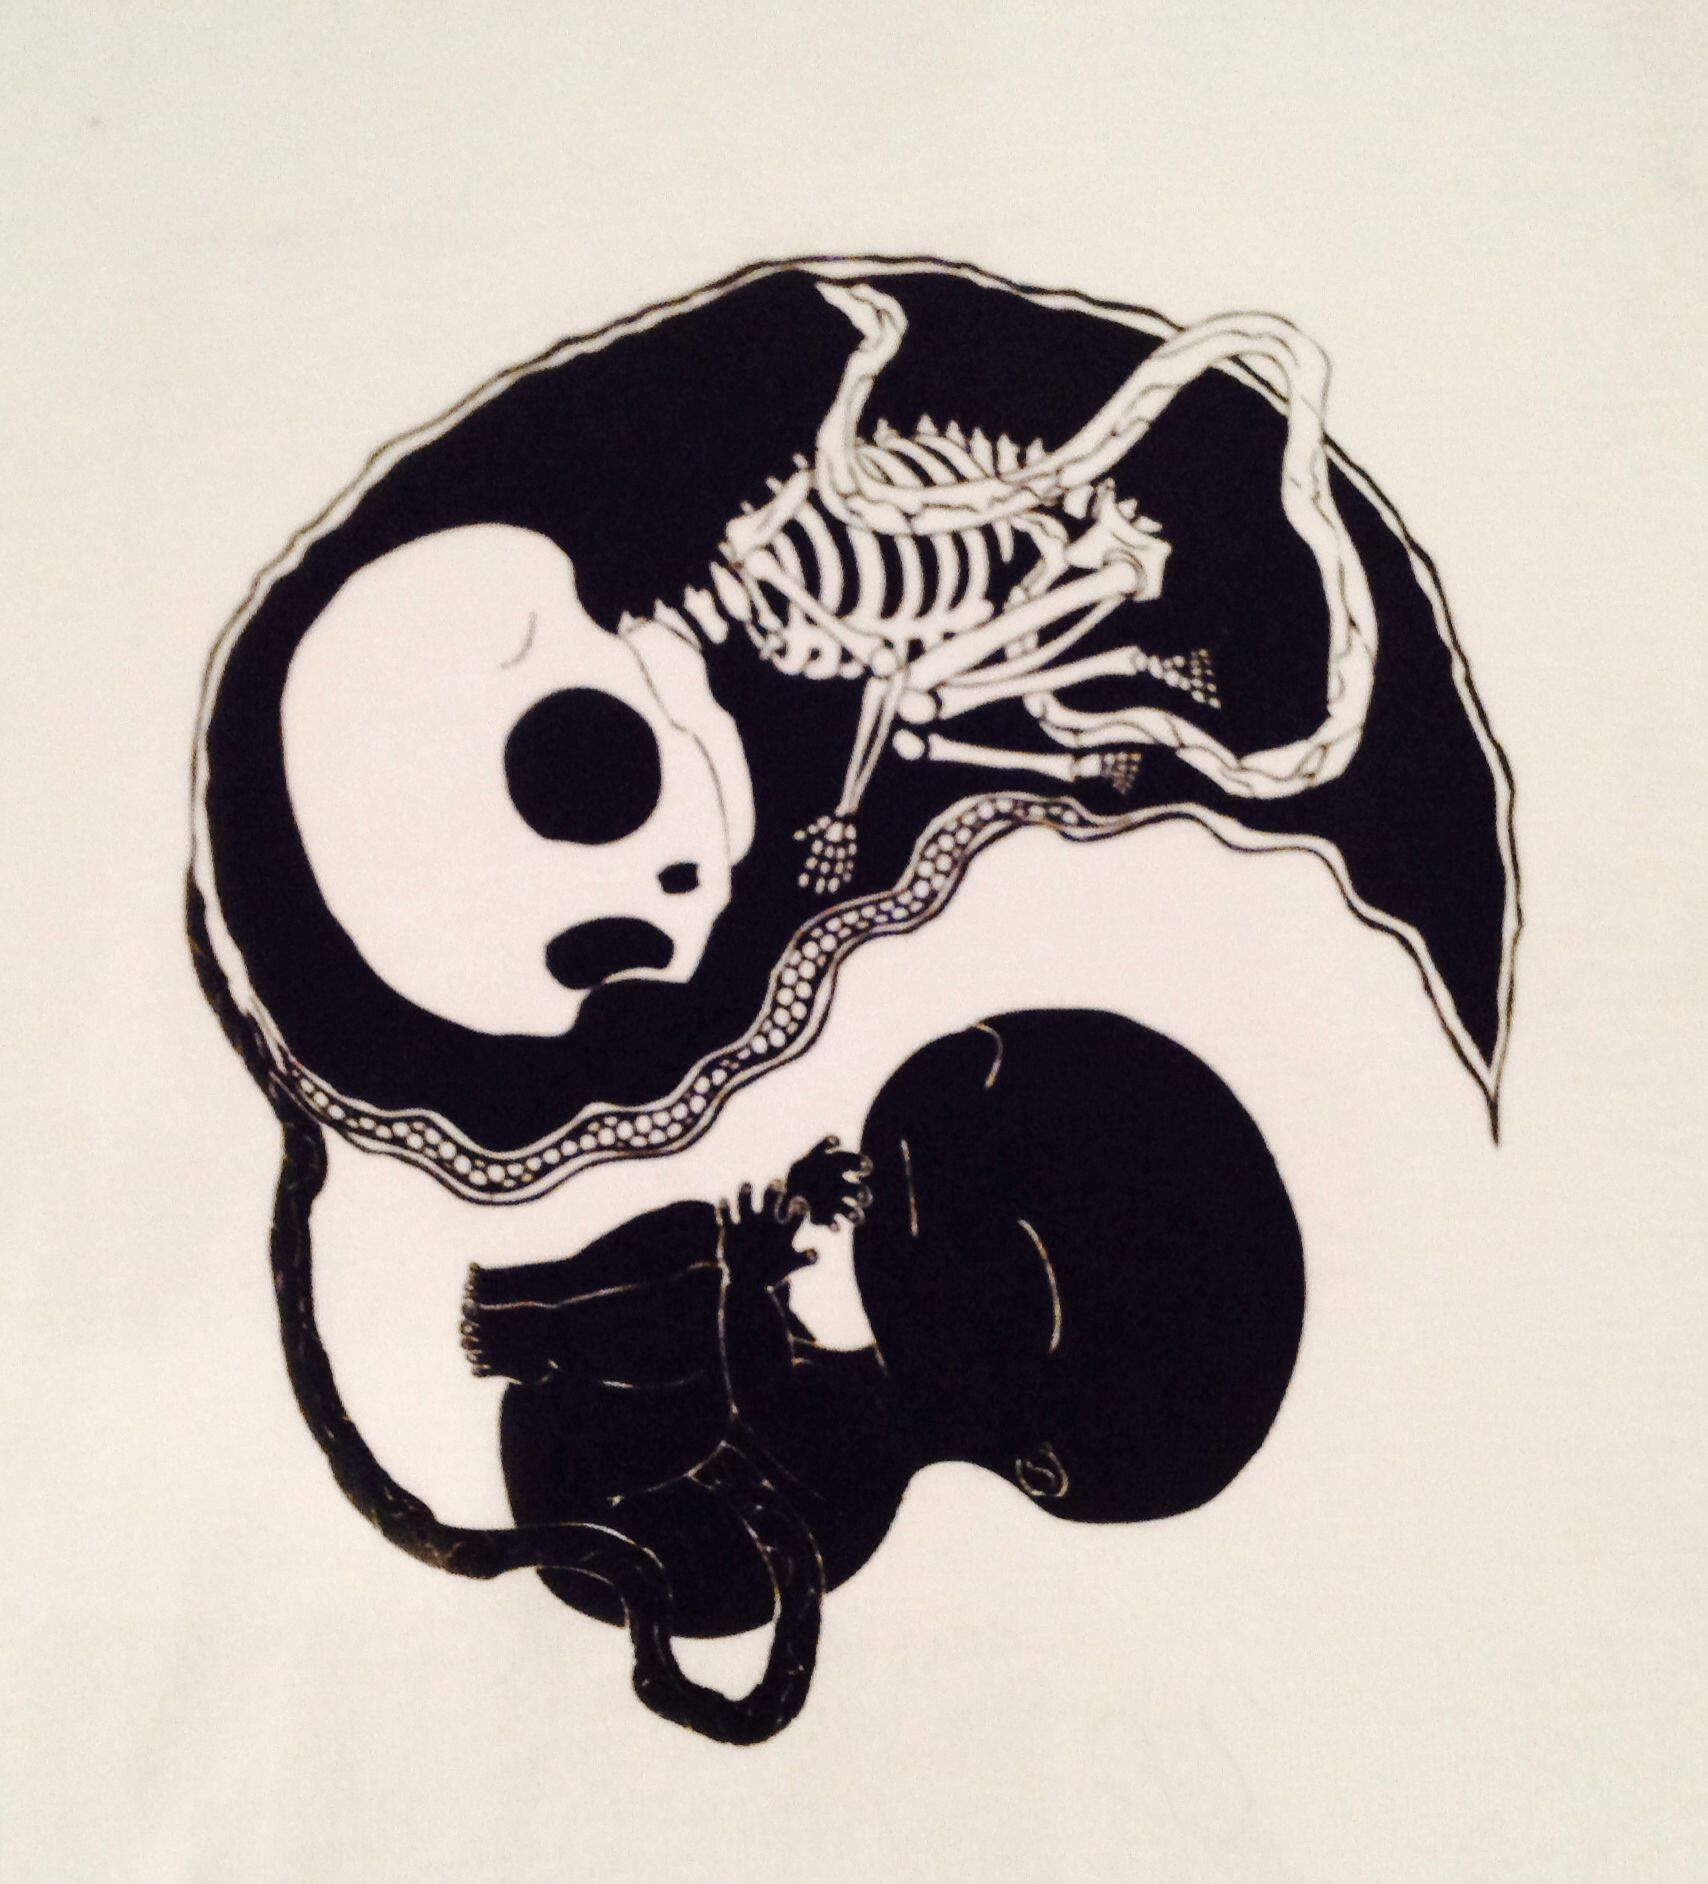 The yin and yang of life in this 'Embryo' design by Alan Chu is printed on black or white t-shirts of various women's sizes